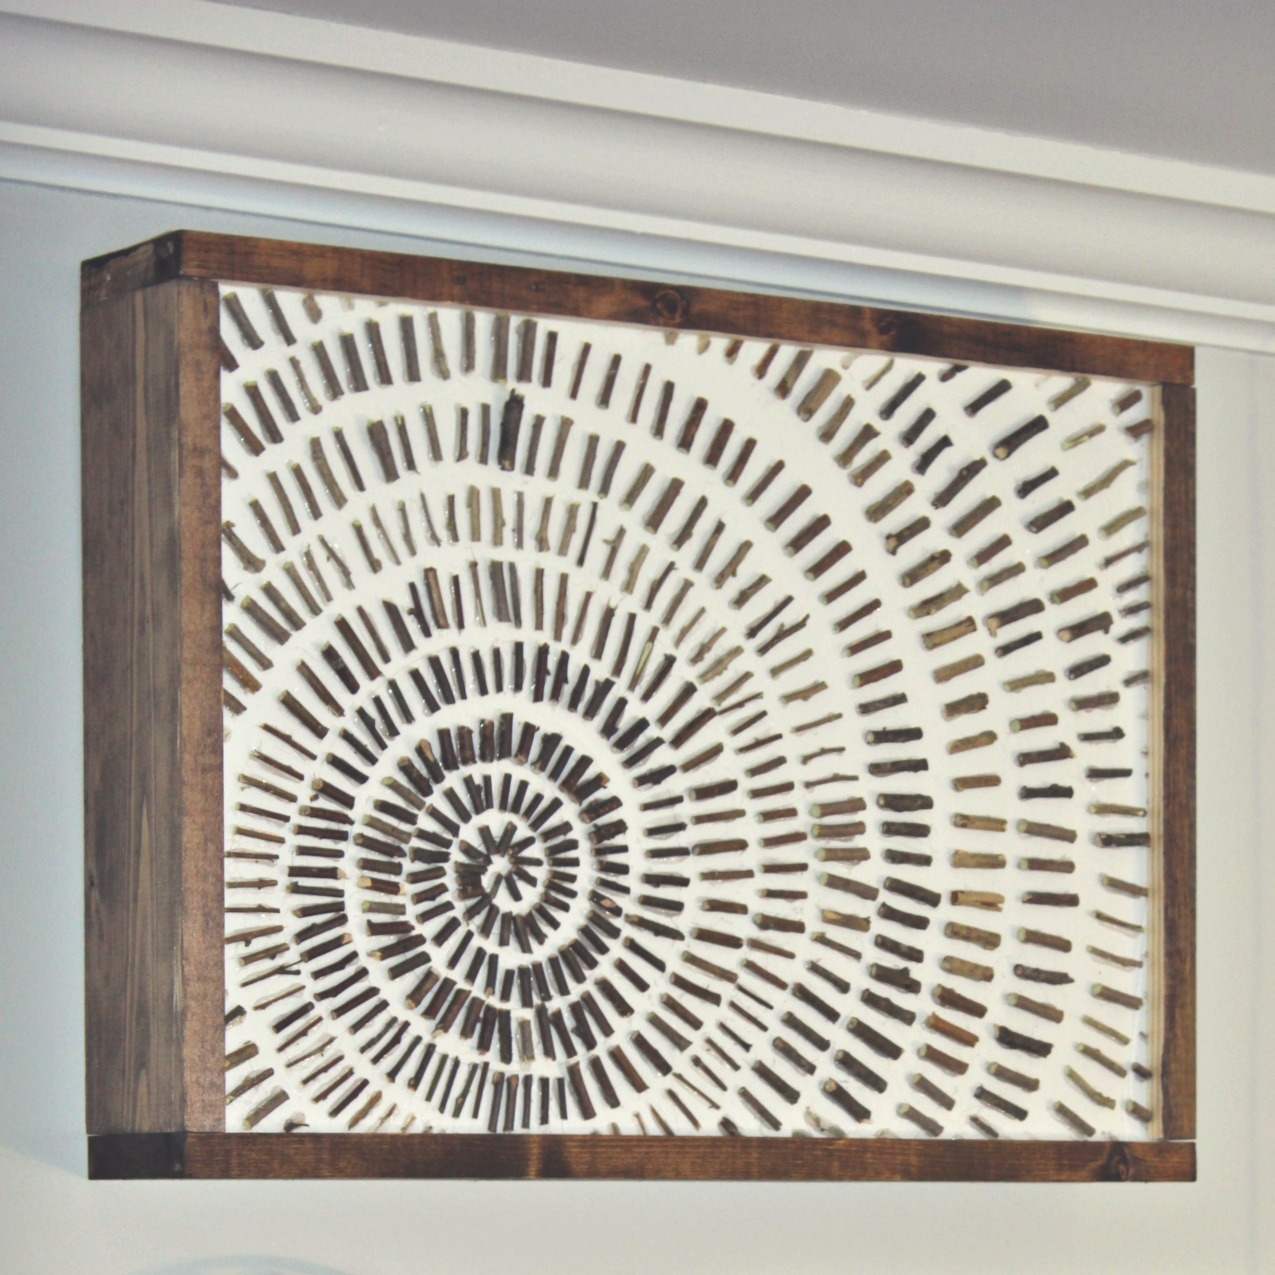 In Between Trips Outside, I Got In A Little Crafting And Was Able To Pull  Together This Fun, Simple, DIY Rustic Starburst Wall Art For The January  Create ... Part 74